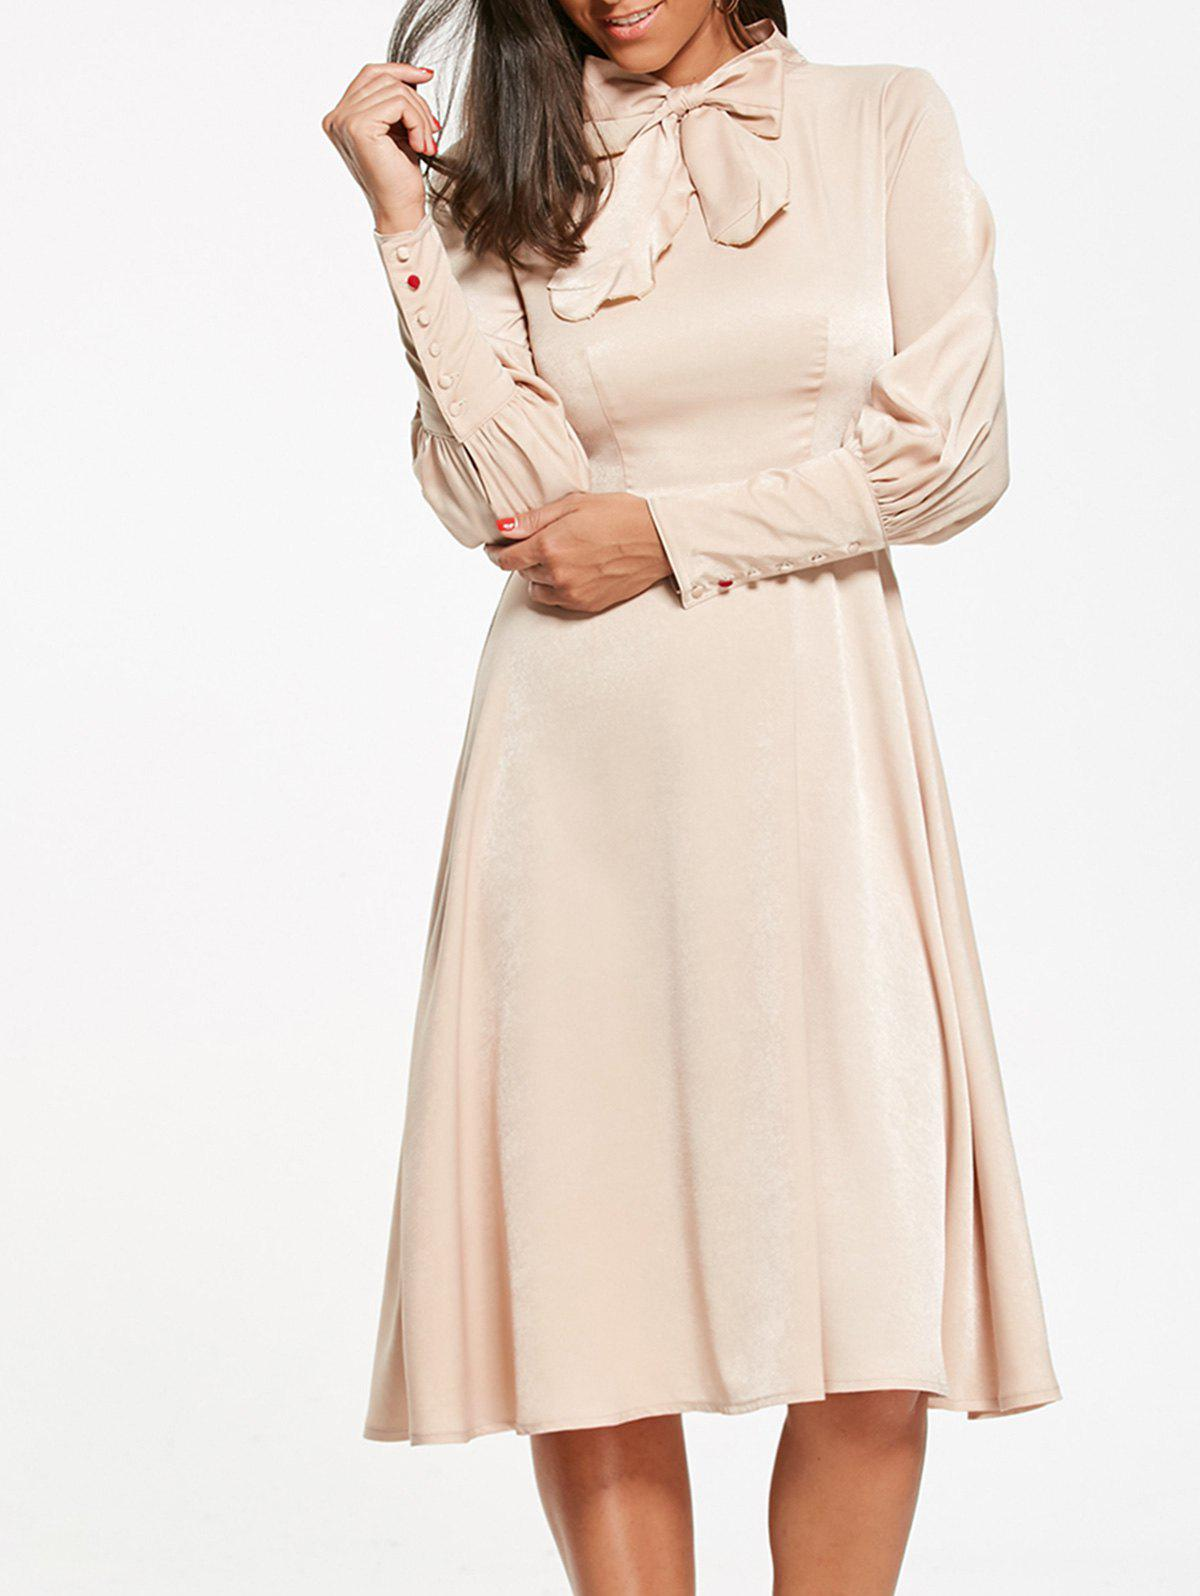 Bow Tie Collar Cuff Sleeve Flare Dress - Beige Léger M